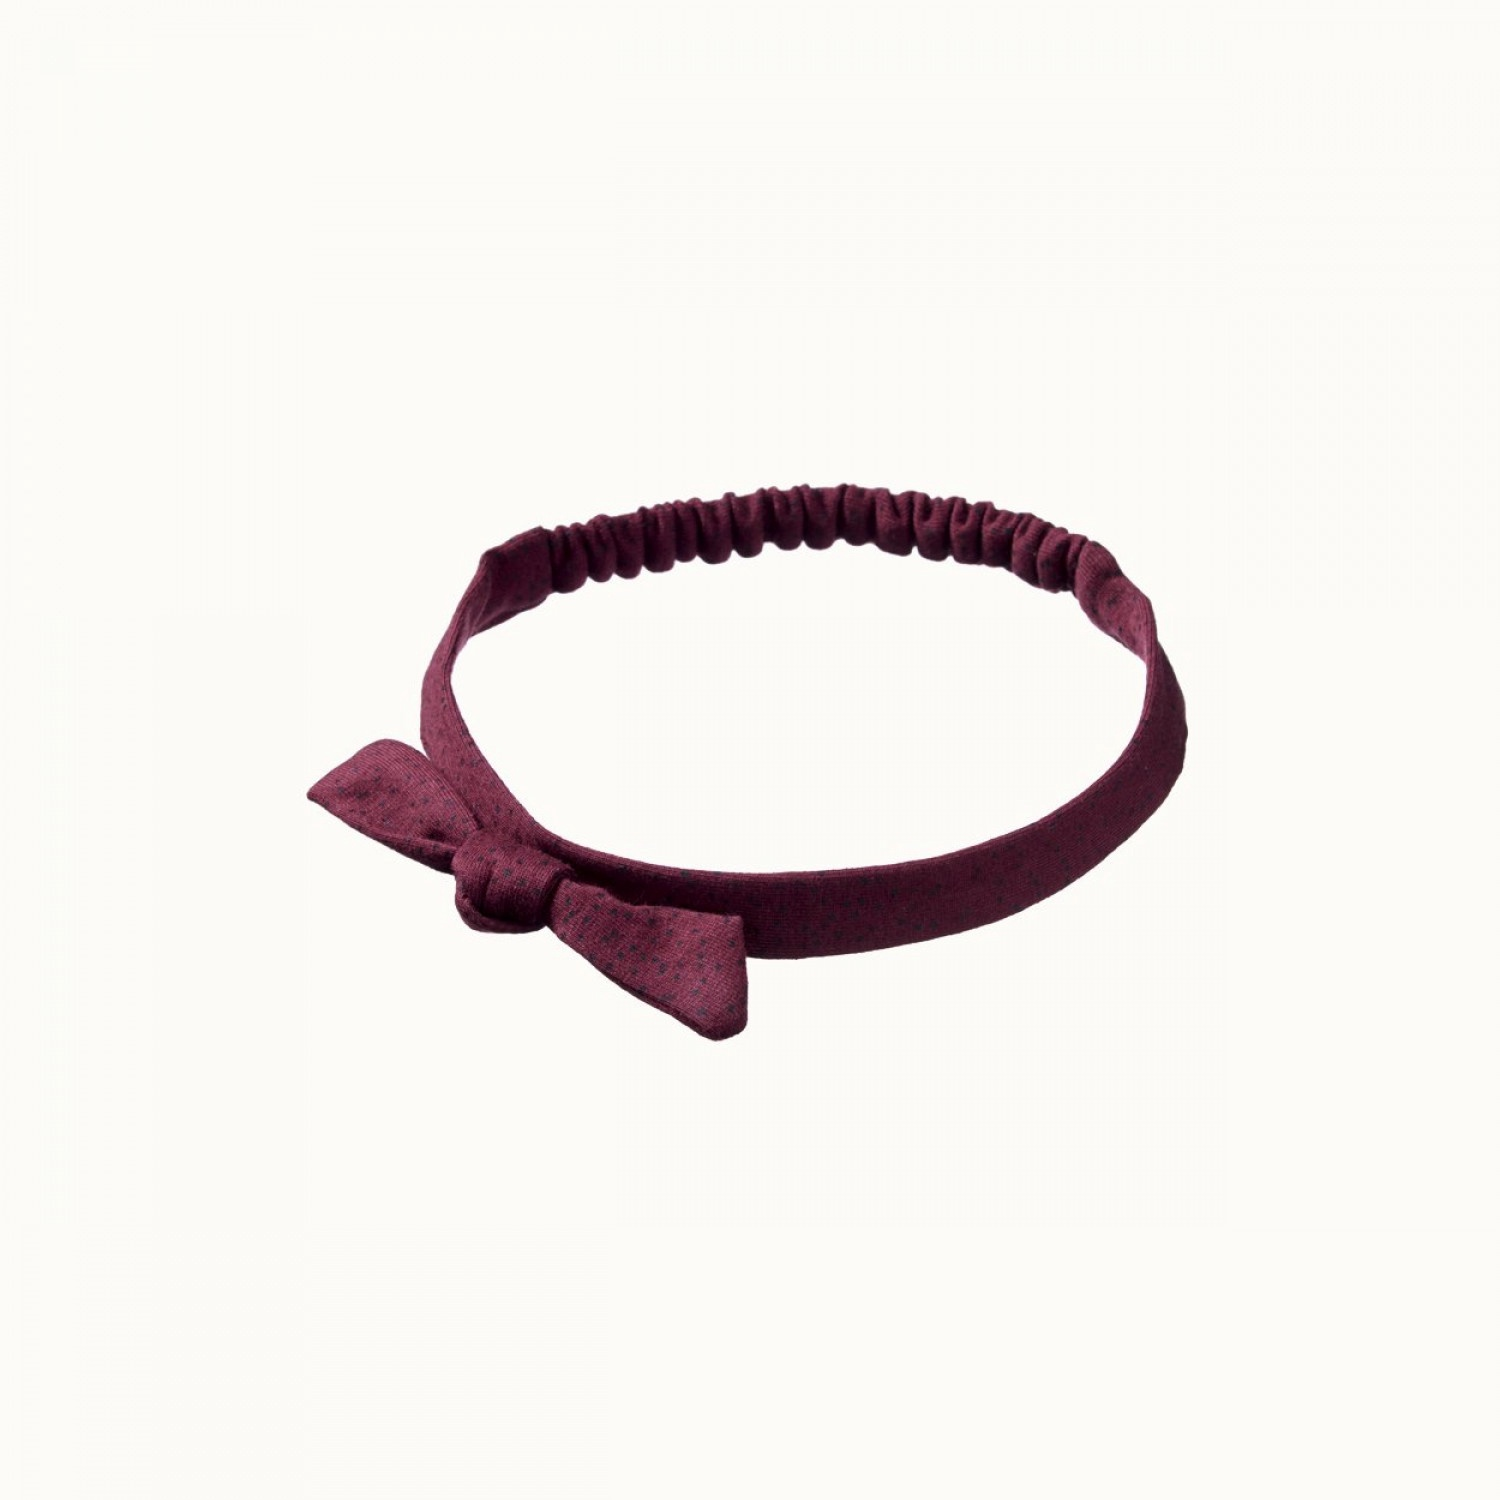 SMALL BOW HEAD BAND - SMALL SPECKLE MULBERRY